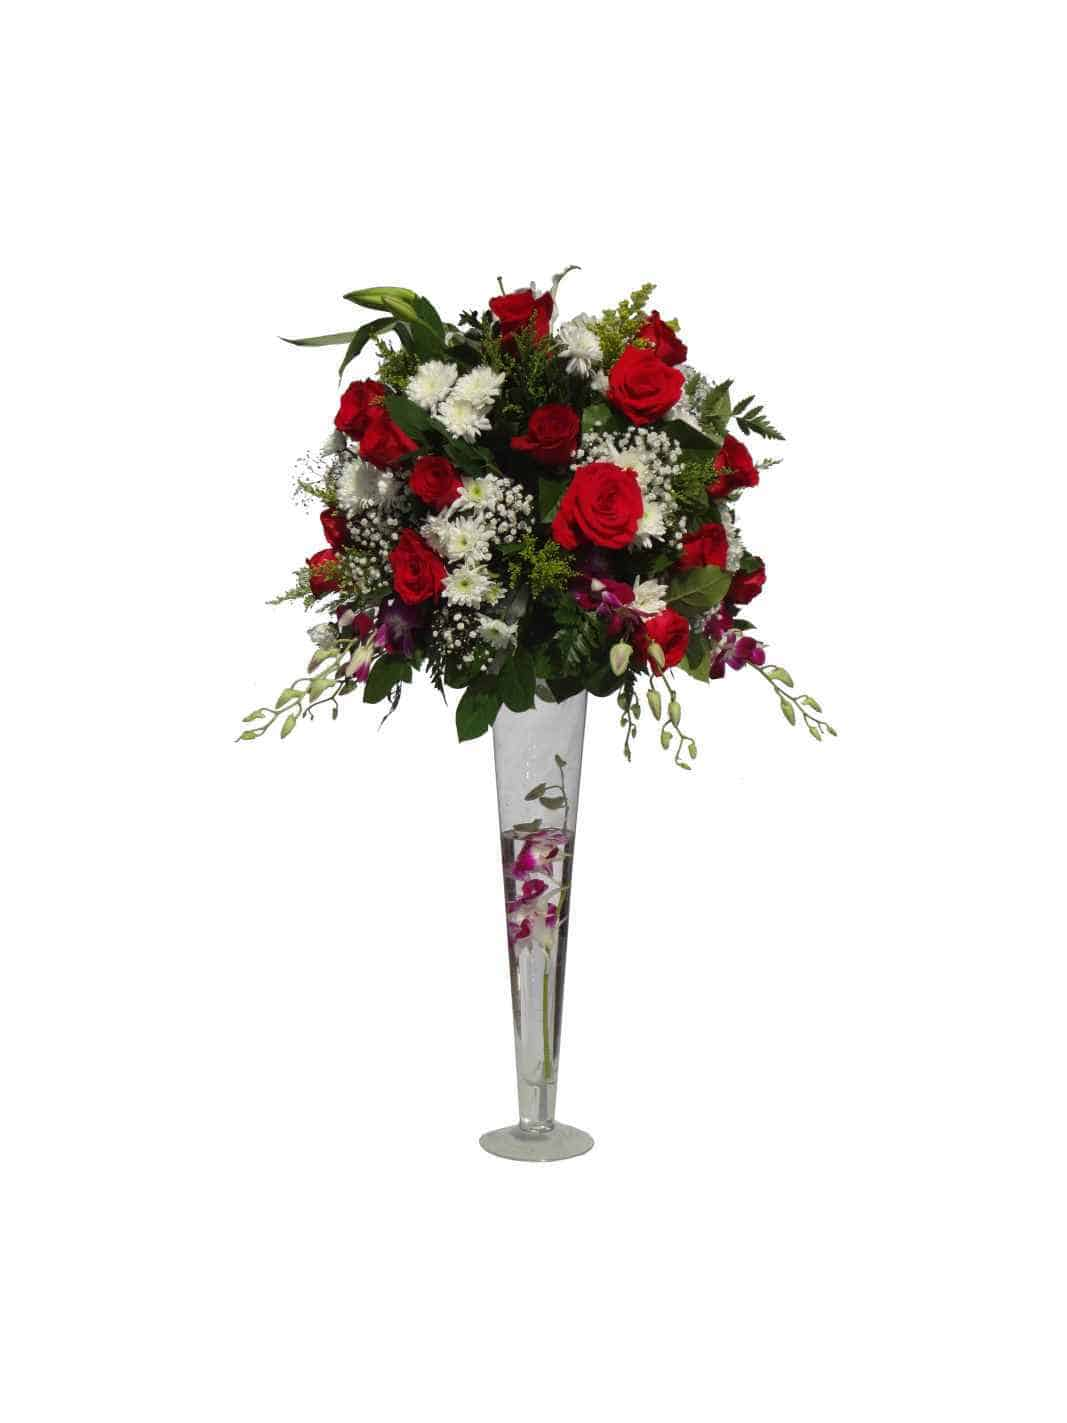 Long vessel bouquet with 8 Orchids, 26 Roses, 12 Daisies, Baby bread, Lemon leaves.